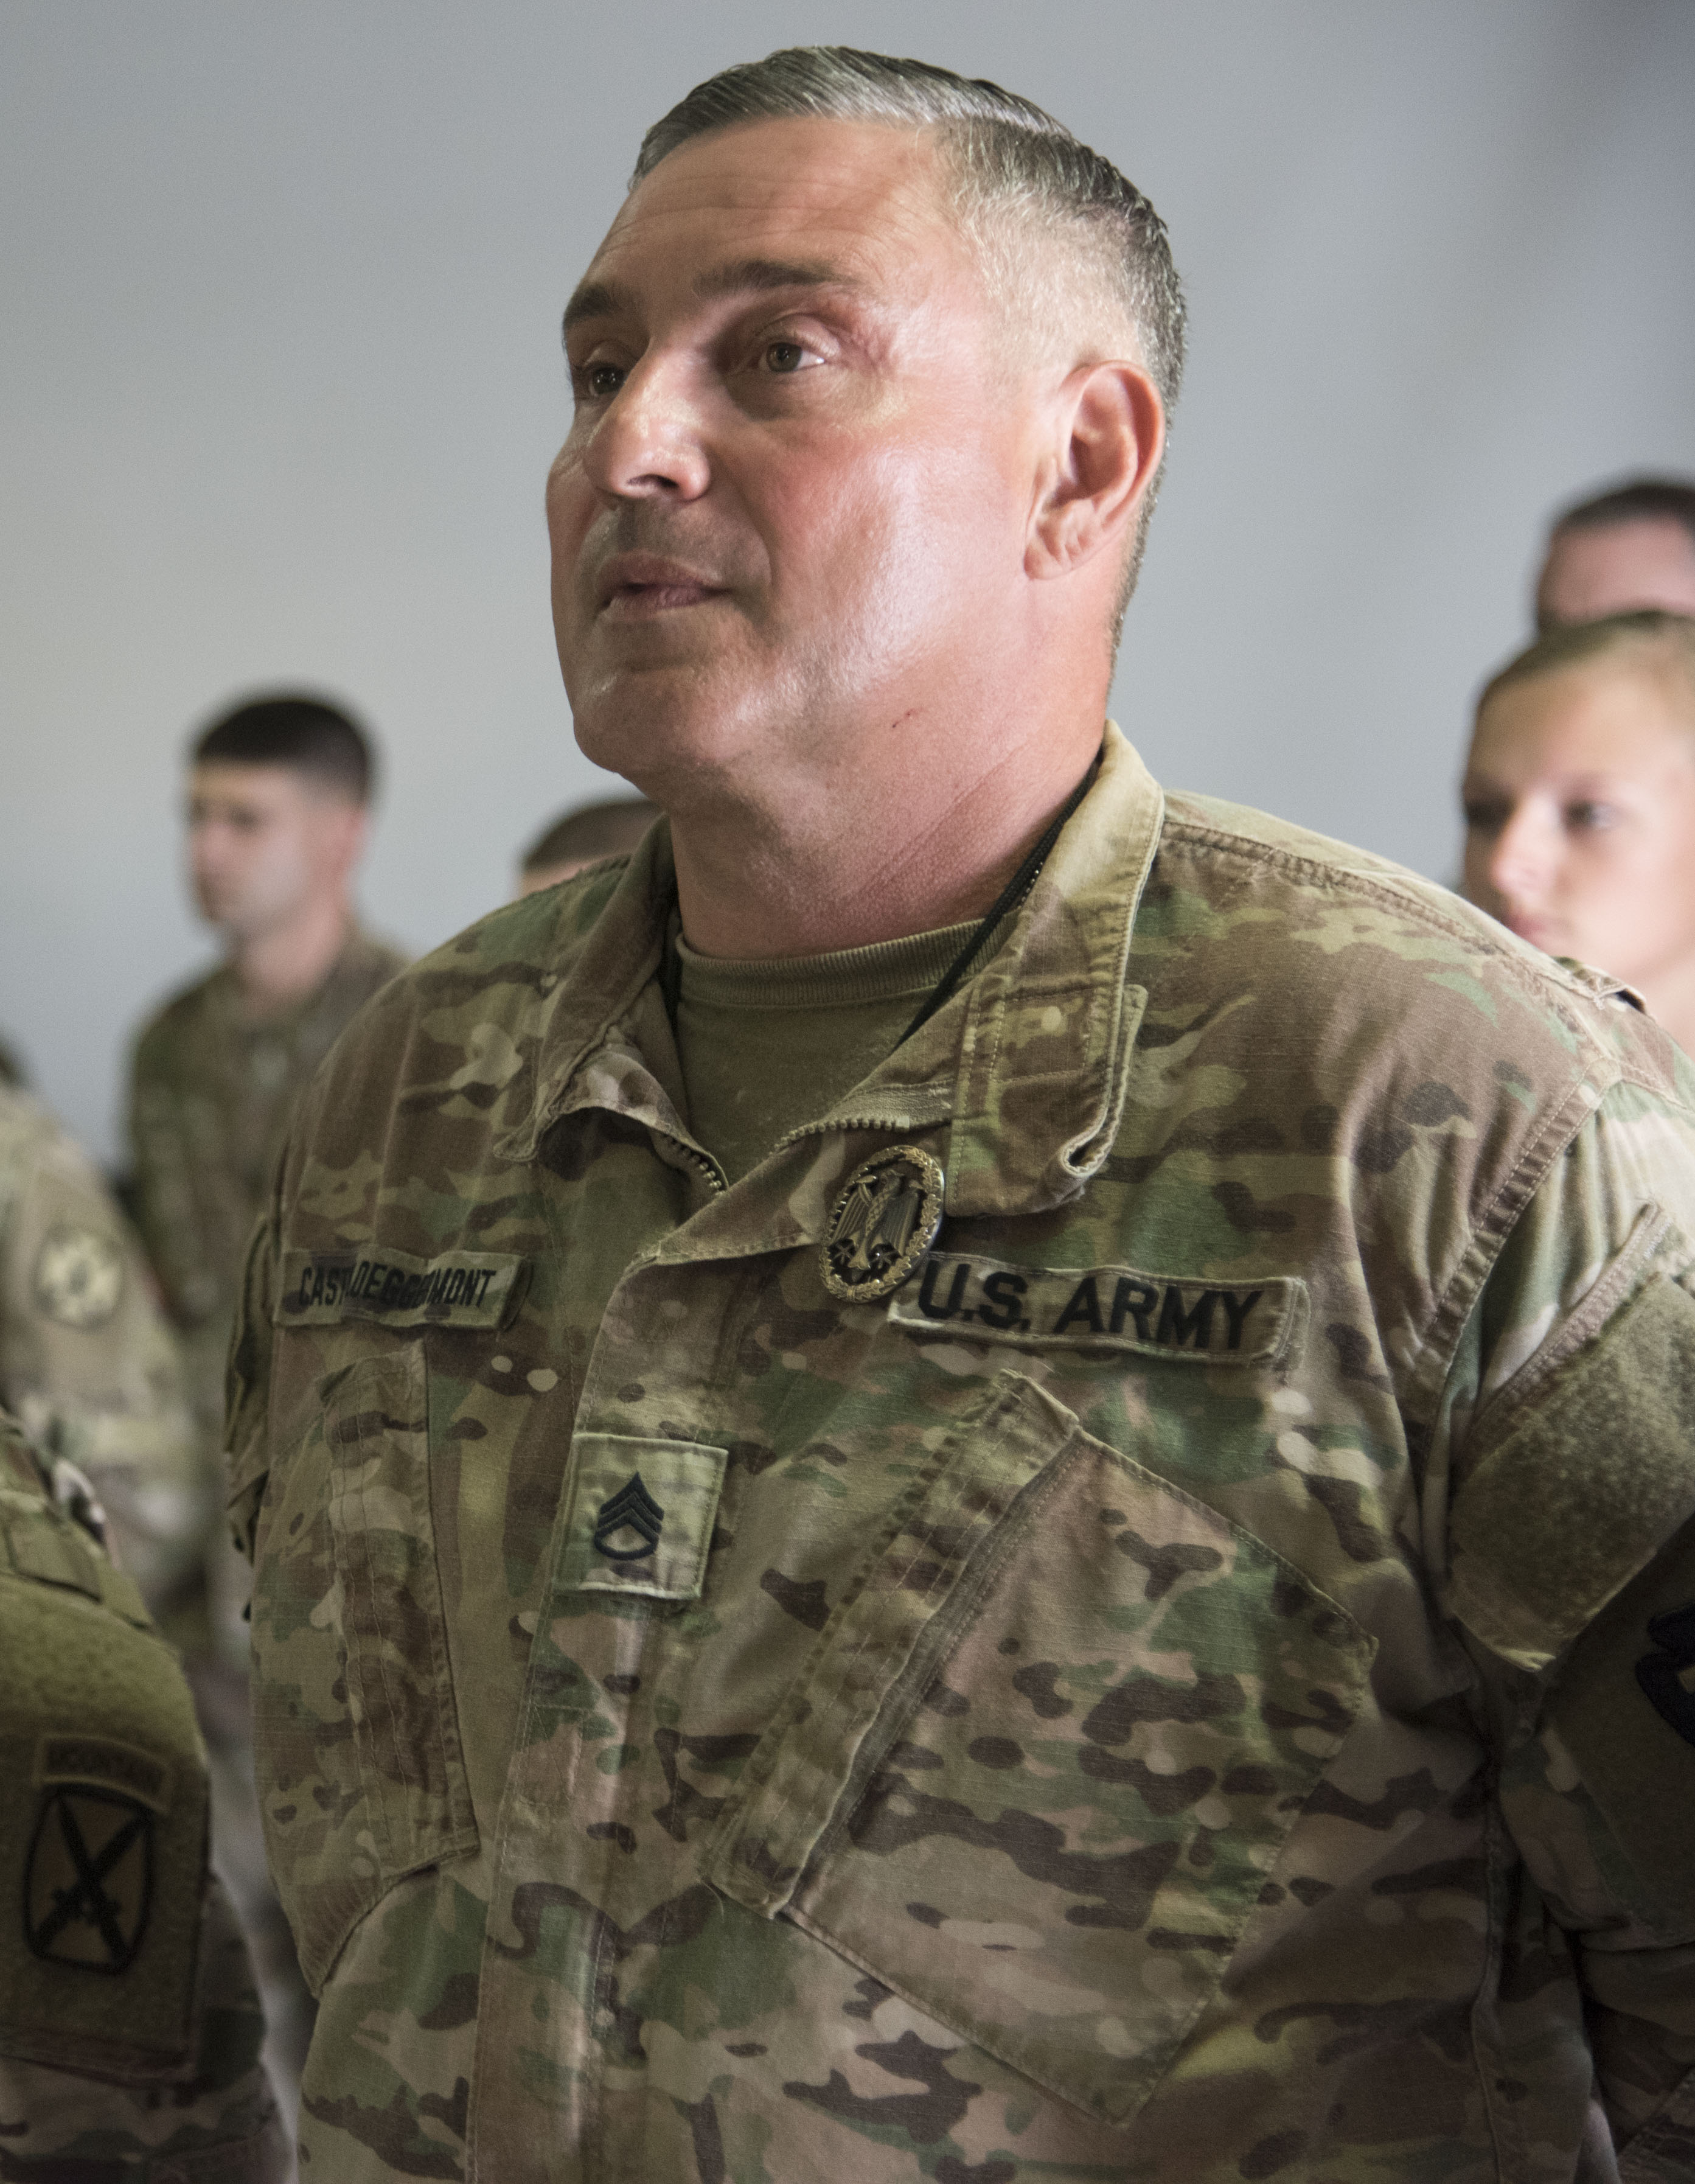 U.S. Army Staff Sgt. John Castilloeggermont, assigned to Combined Joint Task Force-Horn of Africa, wears the German Armed Forces Proficiency Badge (GAFPB) on his collar at Camp Lemonnier, Djibouti, Dec. 8, 2017. Competitors completed a physical fitness test, uniformed swim, weapons qualification, ruck march, first aid course and chemical warfare course to be awarded the GAFPB, a decoration of the Armed Forces of the Federal Republic of Germany and one of the few foreign allied military awards that U.S. service members are authorized to wear. (U.S. Air National Guard photo by Staff Sgt. Allyson L. Manners)